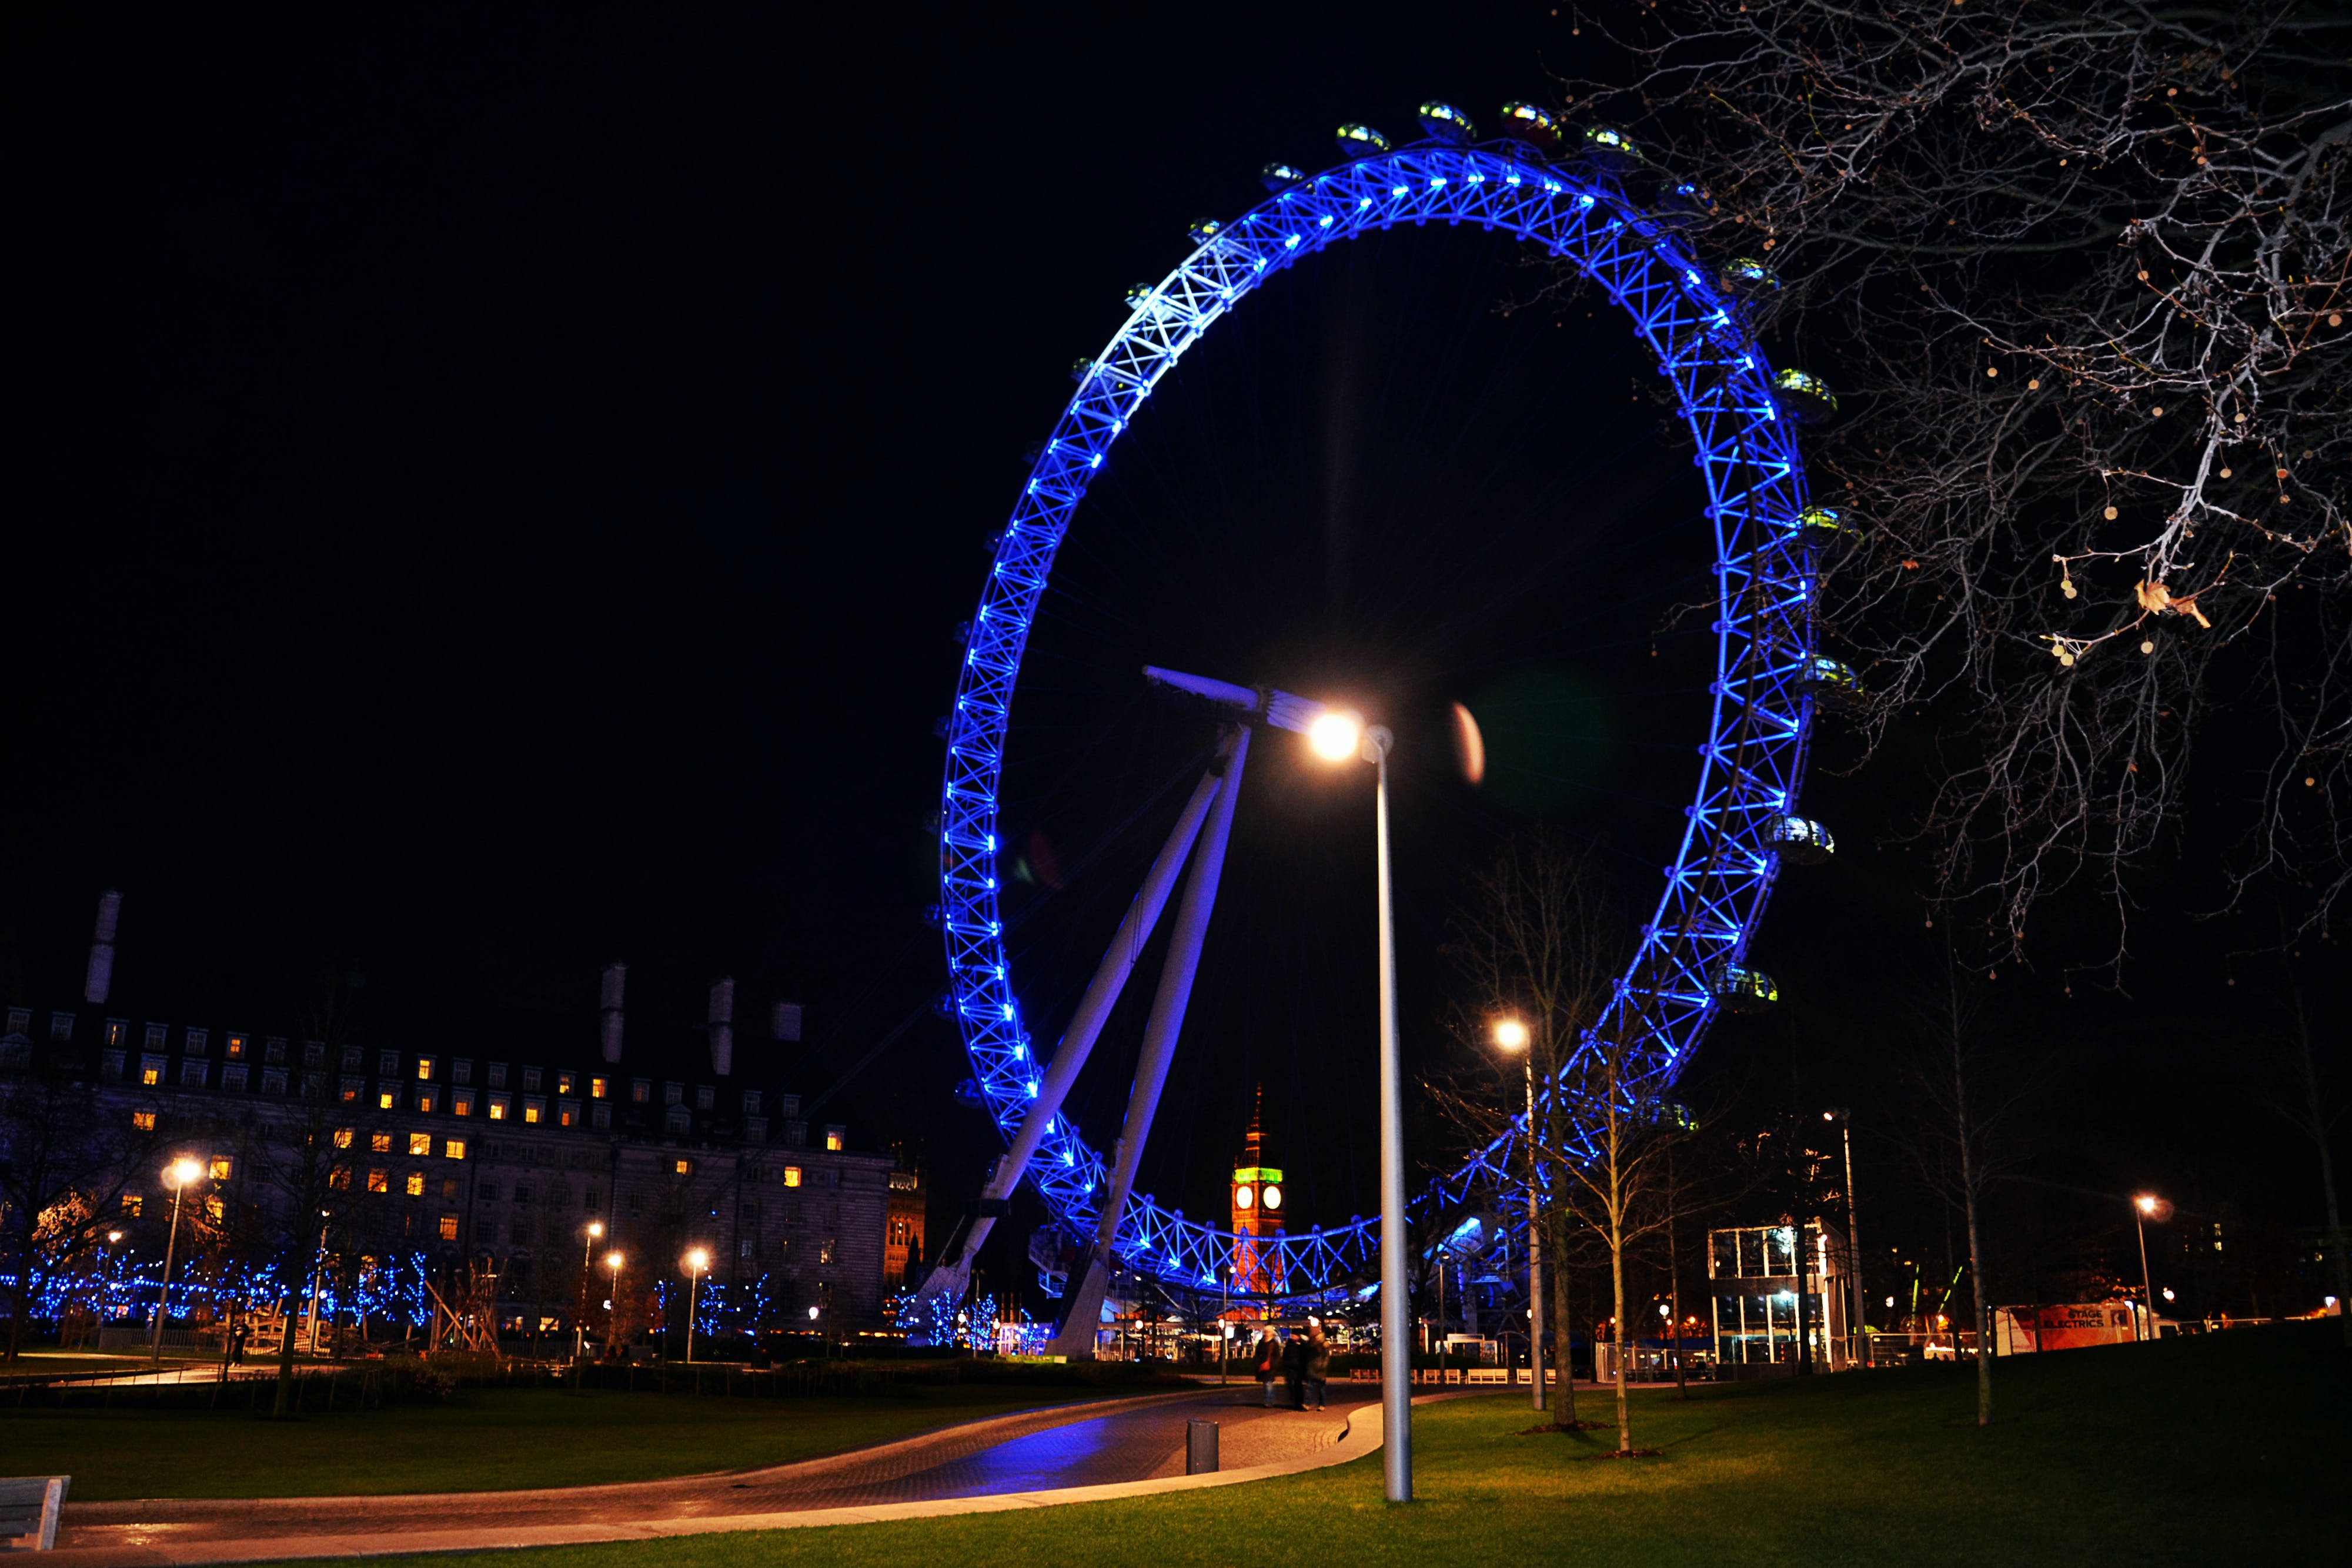 Free stock photo of giant ferris wheel, London Eye at night, London UK, Millennium Wheel